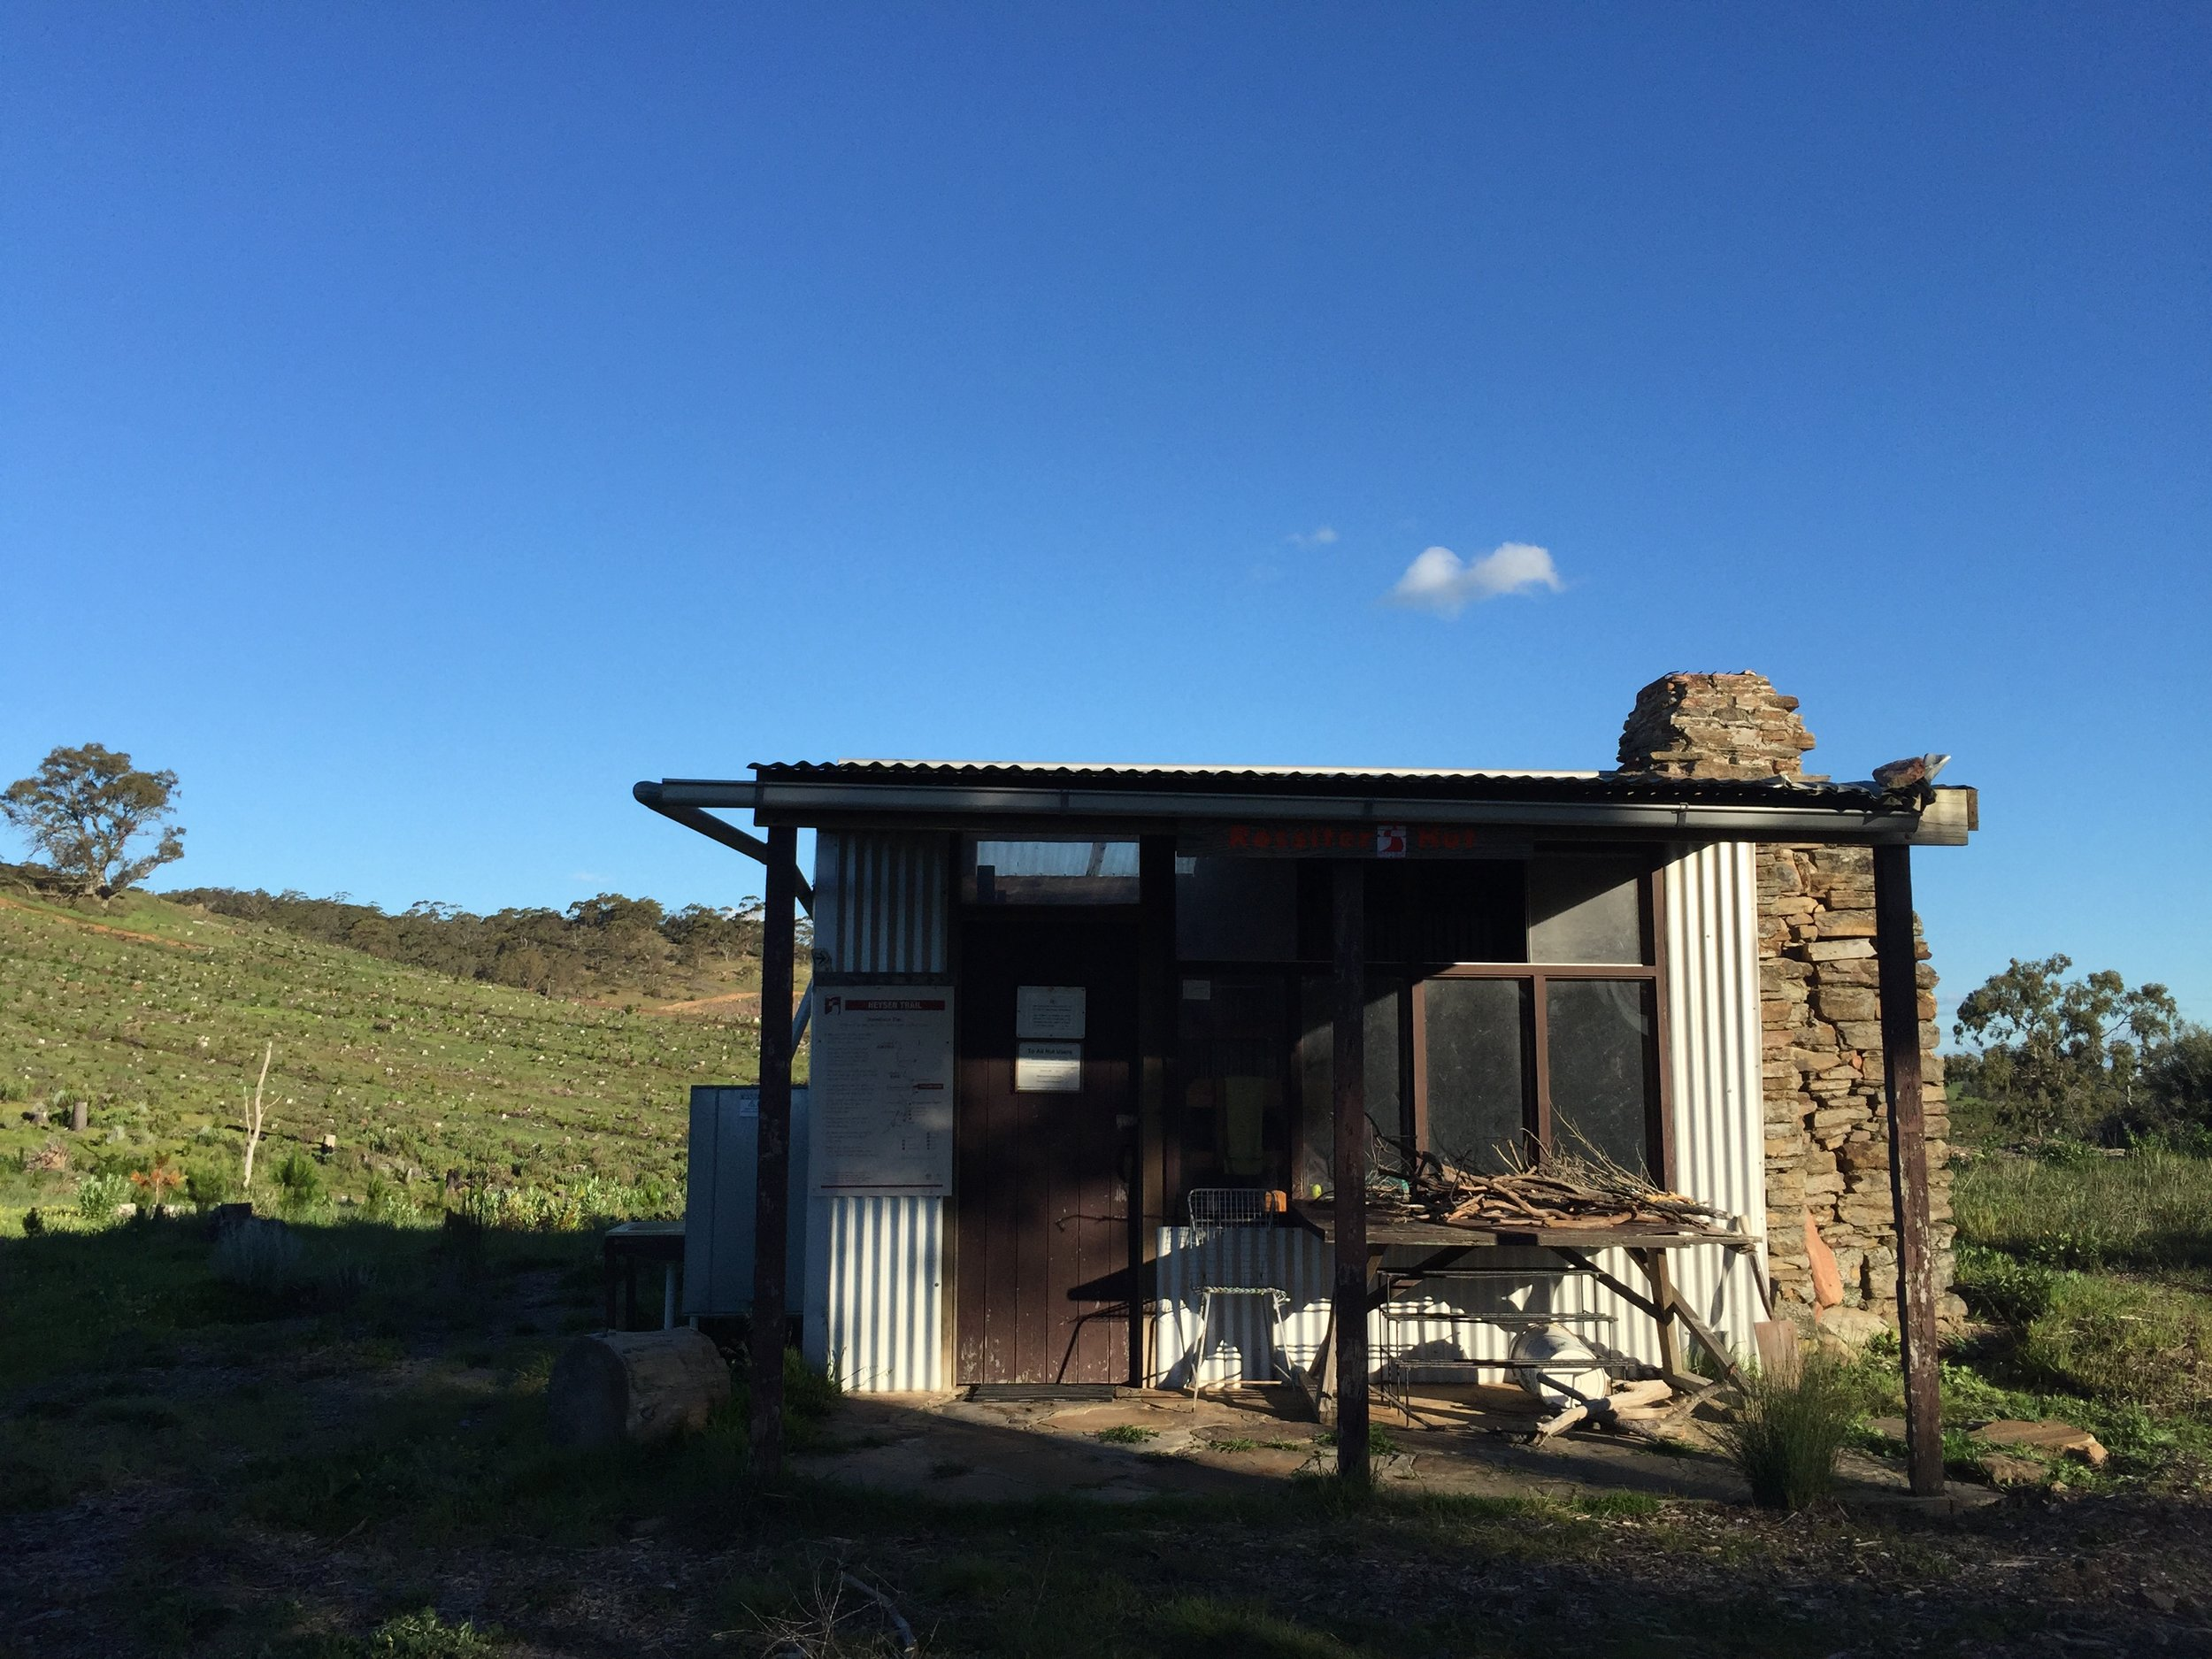 The Rossiters Hut -- it is a luxury while on the Heysen Trail to have such lodgings; its spartan practicality reminds its transient inhabitants about living simply.